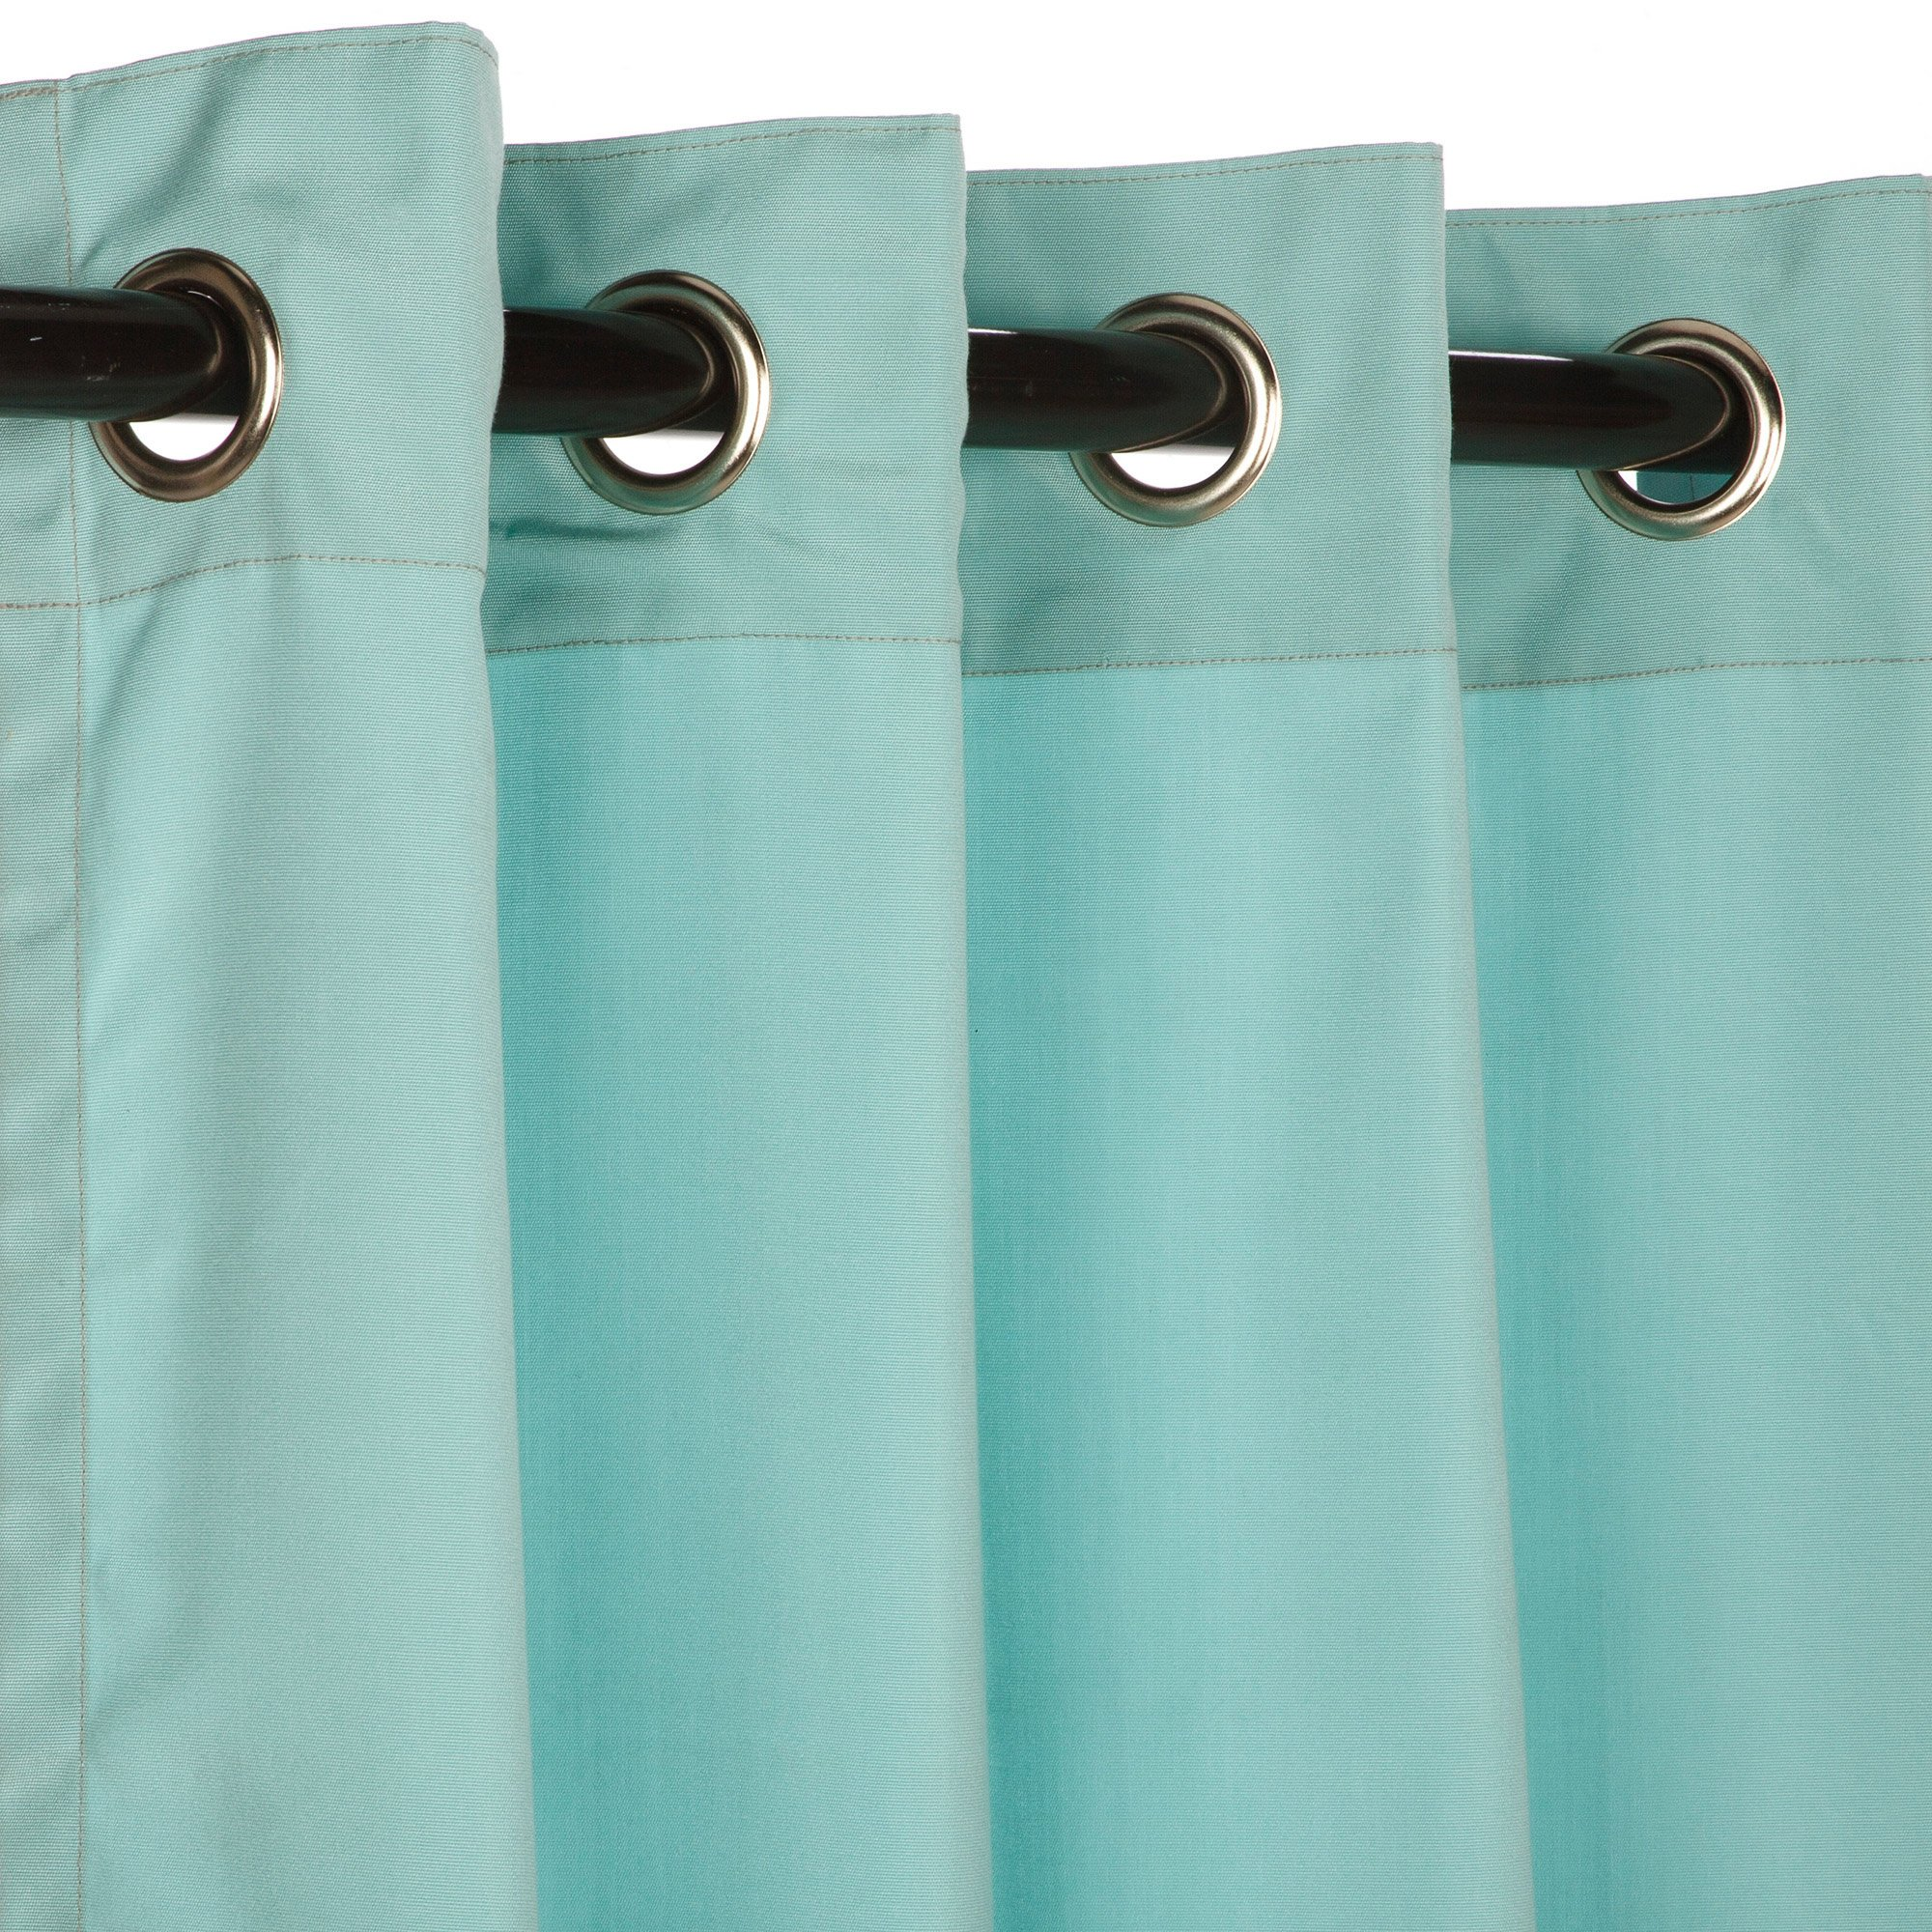 Sunbrella Outdoor Curtain with Nickle Grommets - Canvas Glacier, 50x108 by Sunbrella